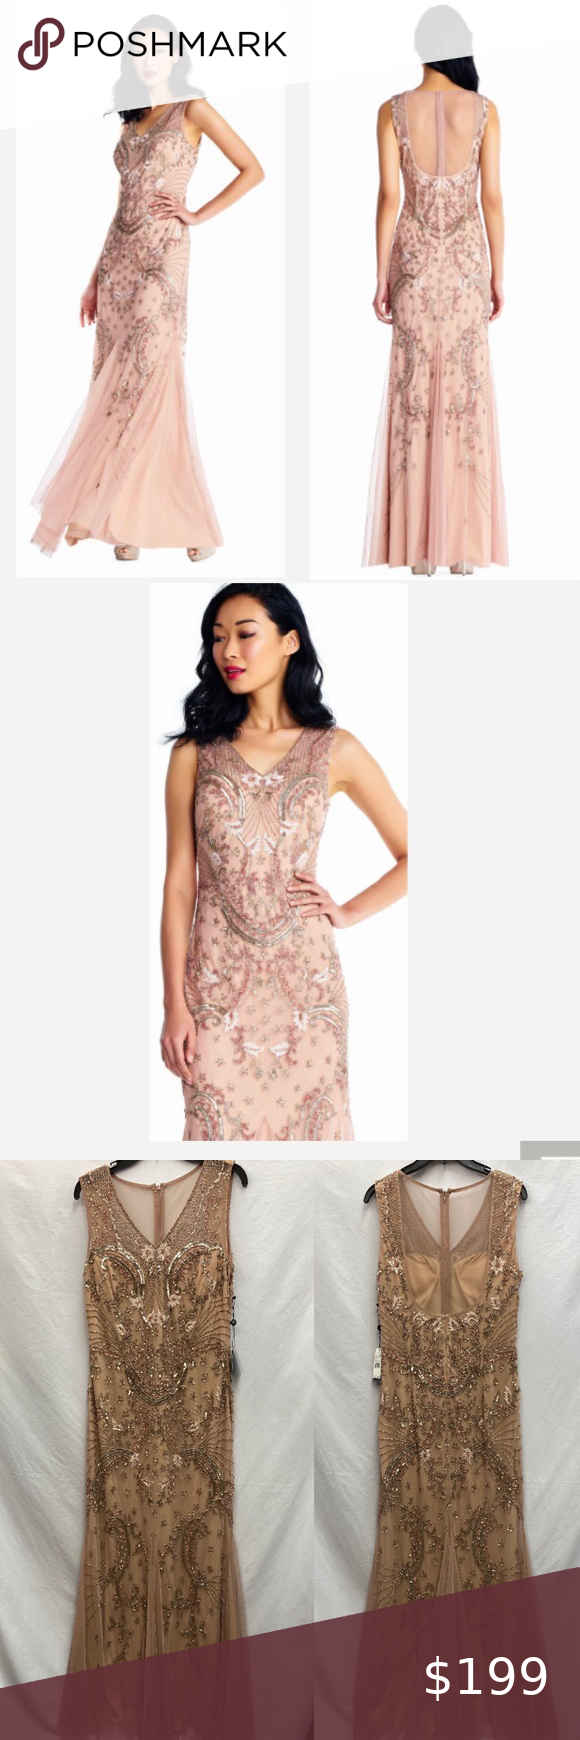 Adrianna Papell Rose Gold Beaded Godet Gown In 2020 Gowns Womens Dresses Adrianna Papell Dresses